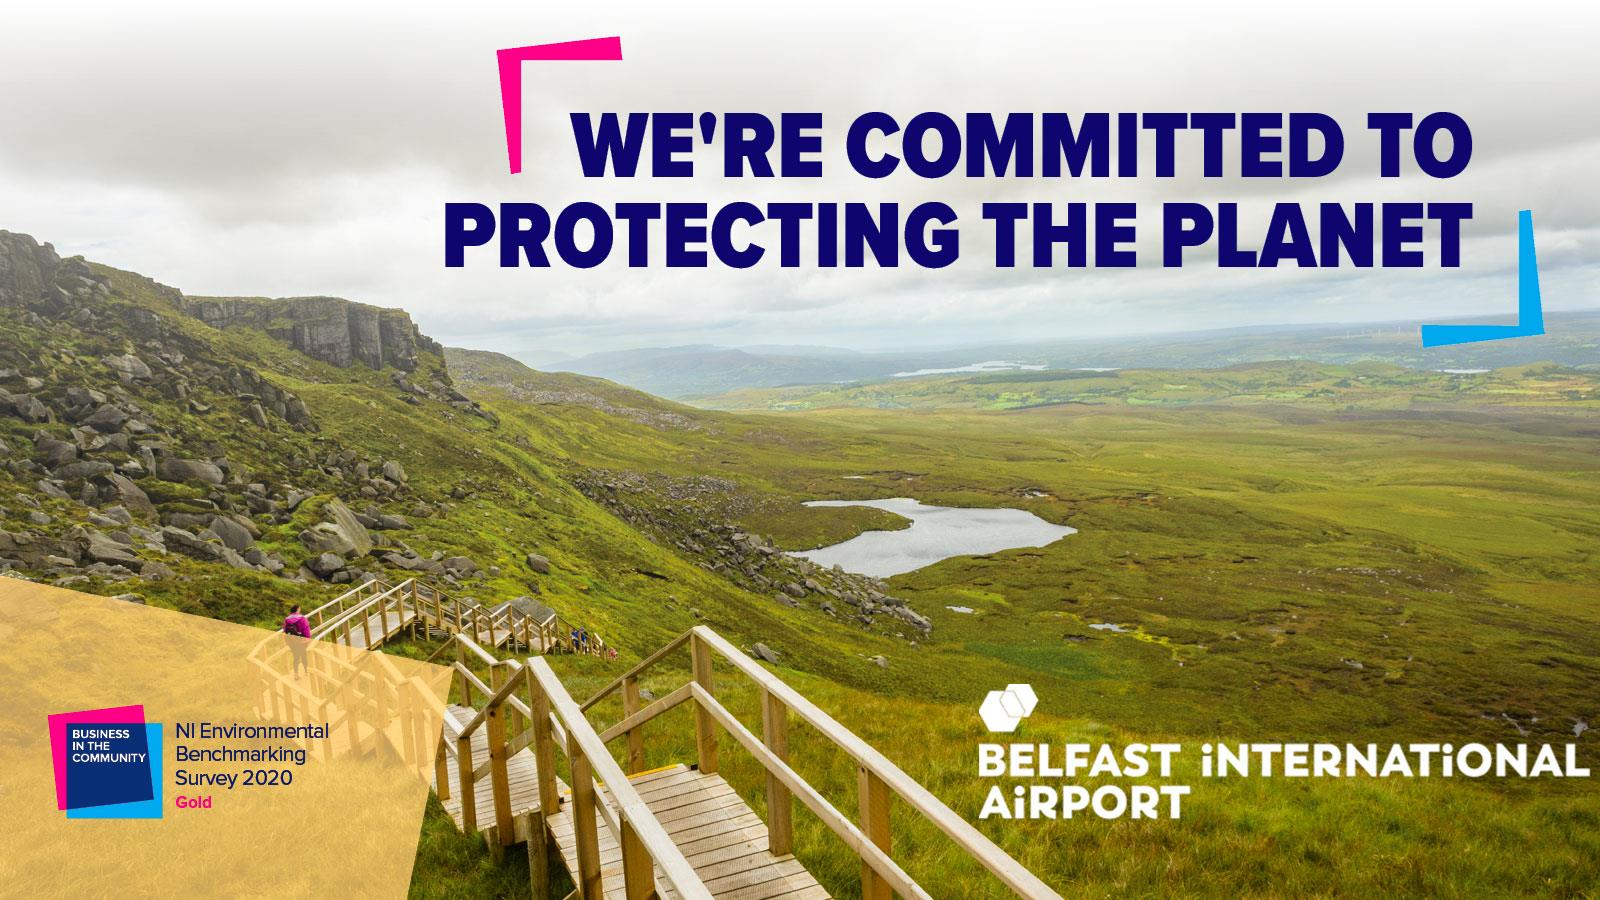 Belfast International Airport recognised for green leadership through NI Environmental Benchmarking Survey